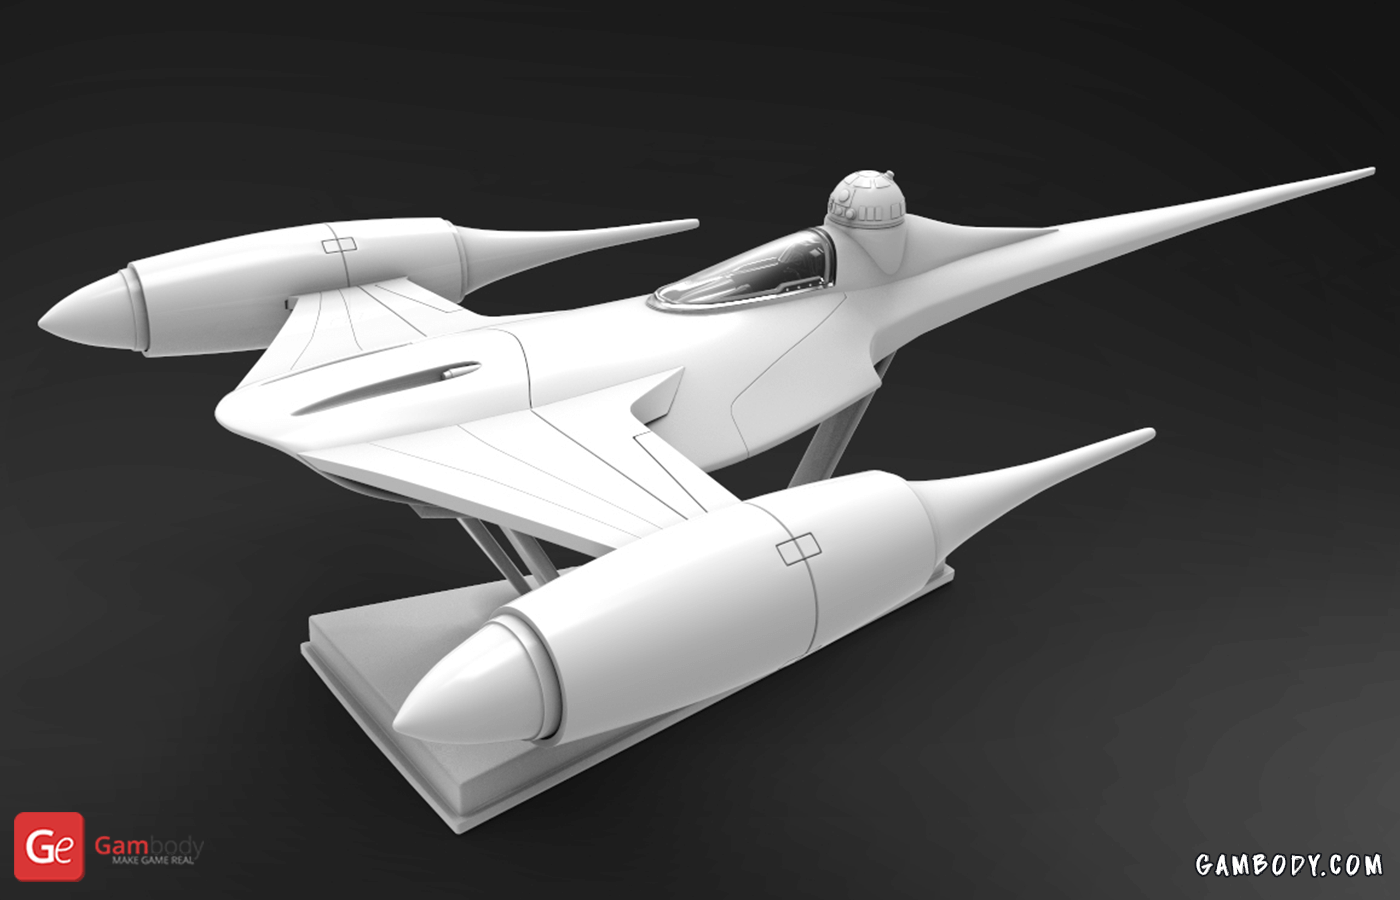 Naboo Starfighter 3D Printing Model